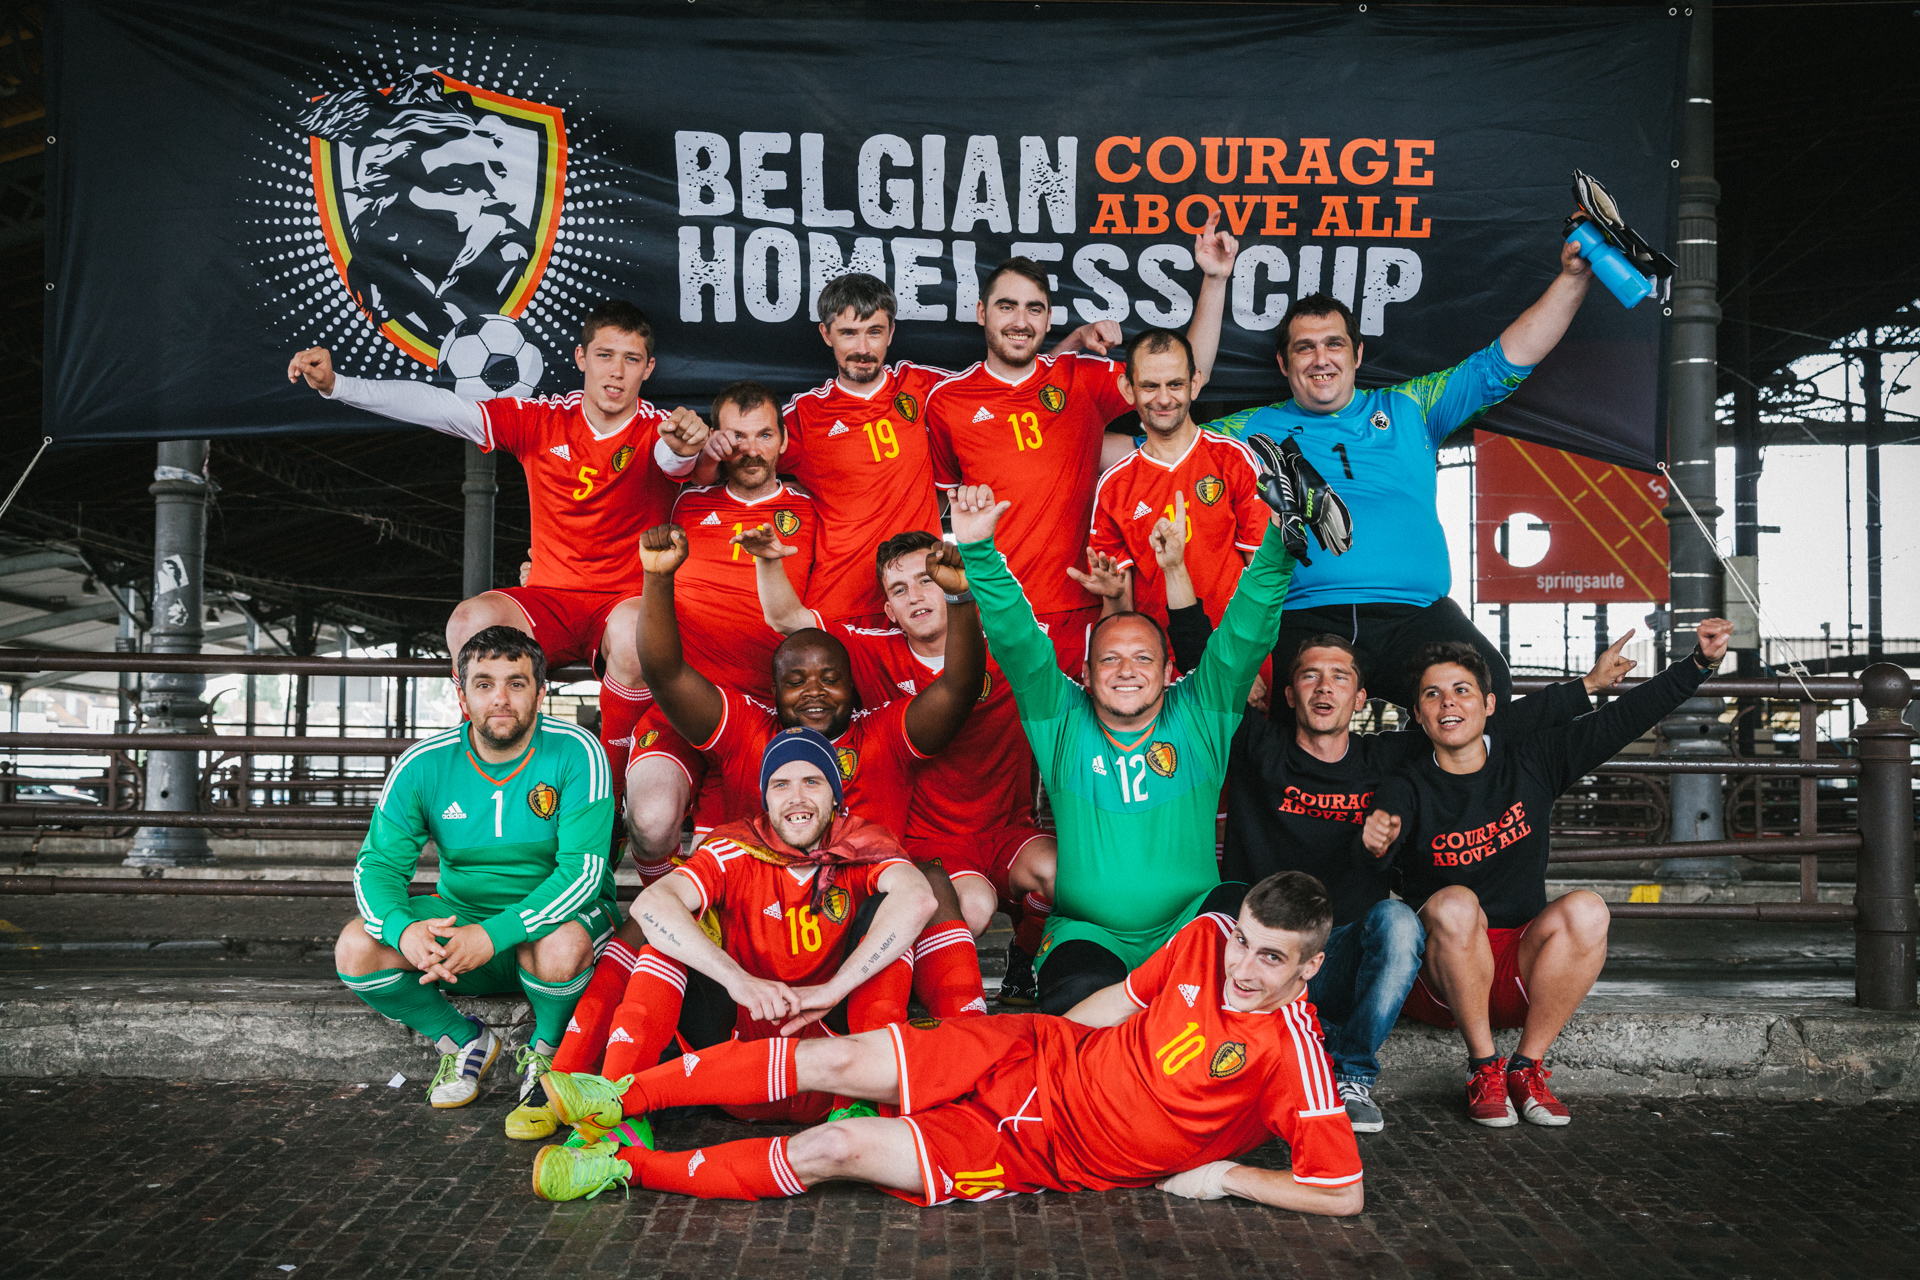 2016_BelgianHomelessCup_lores-111.jpg